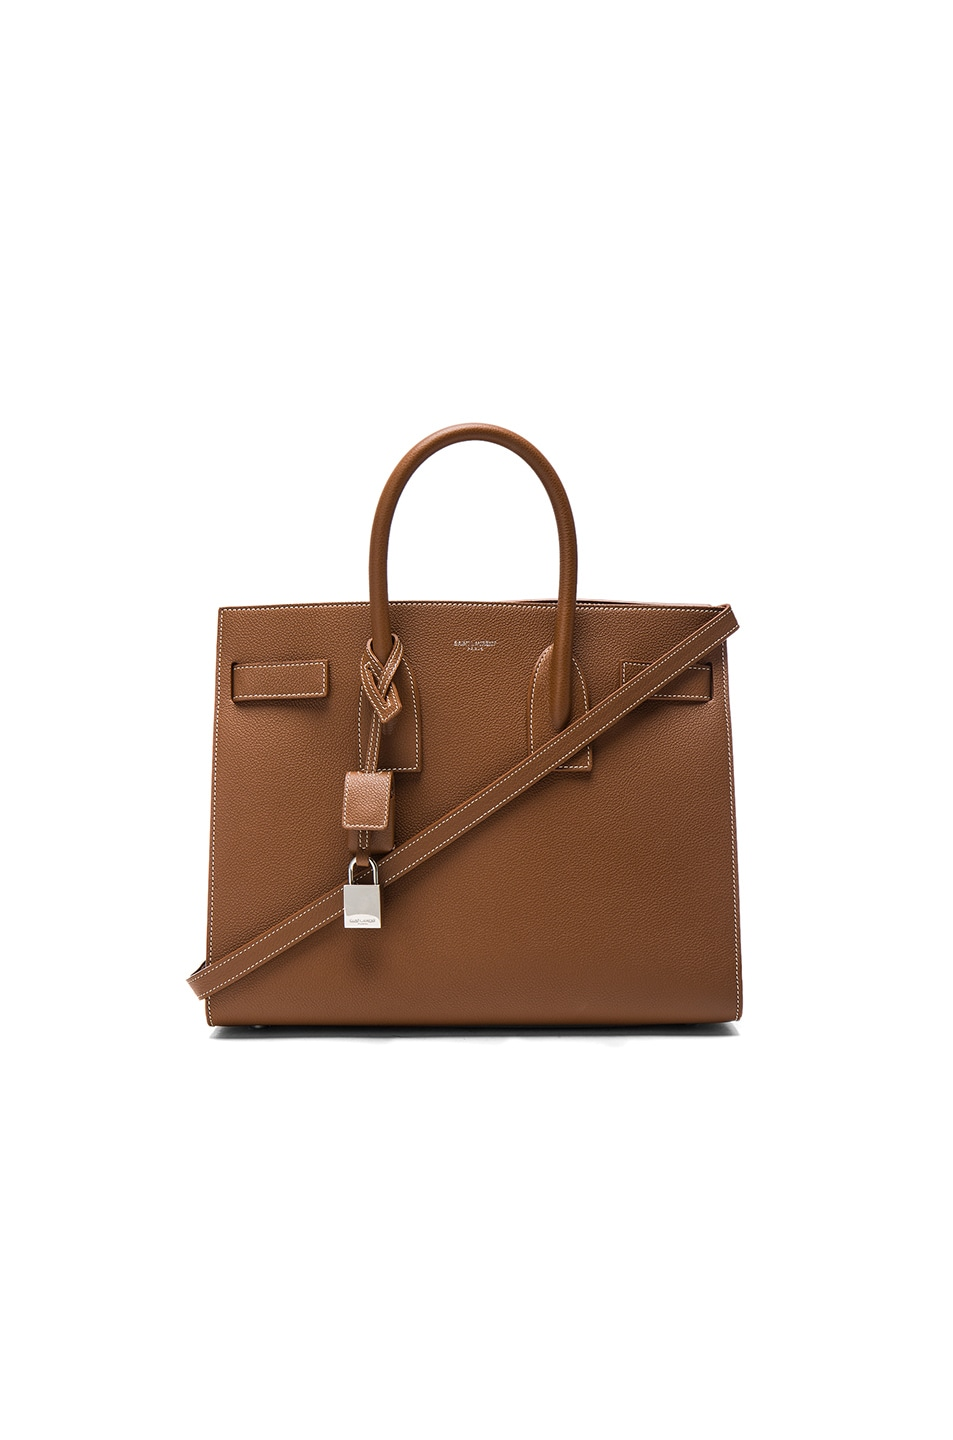 Image 1 of Saint Laurent Small Sac de Jour in Cognac